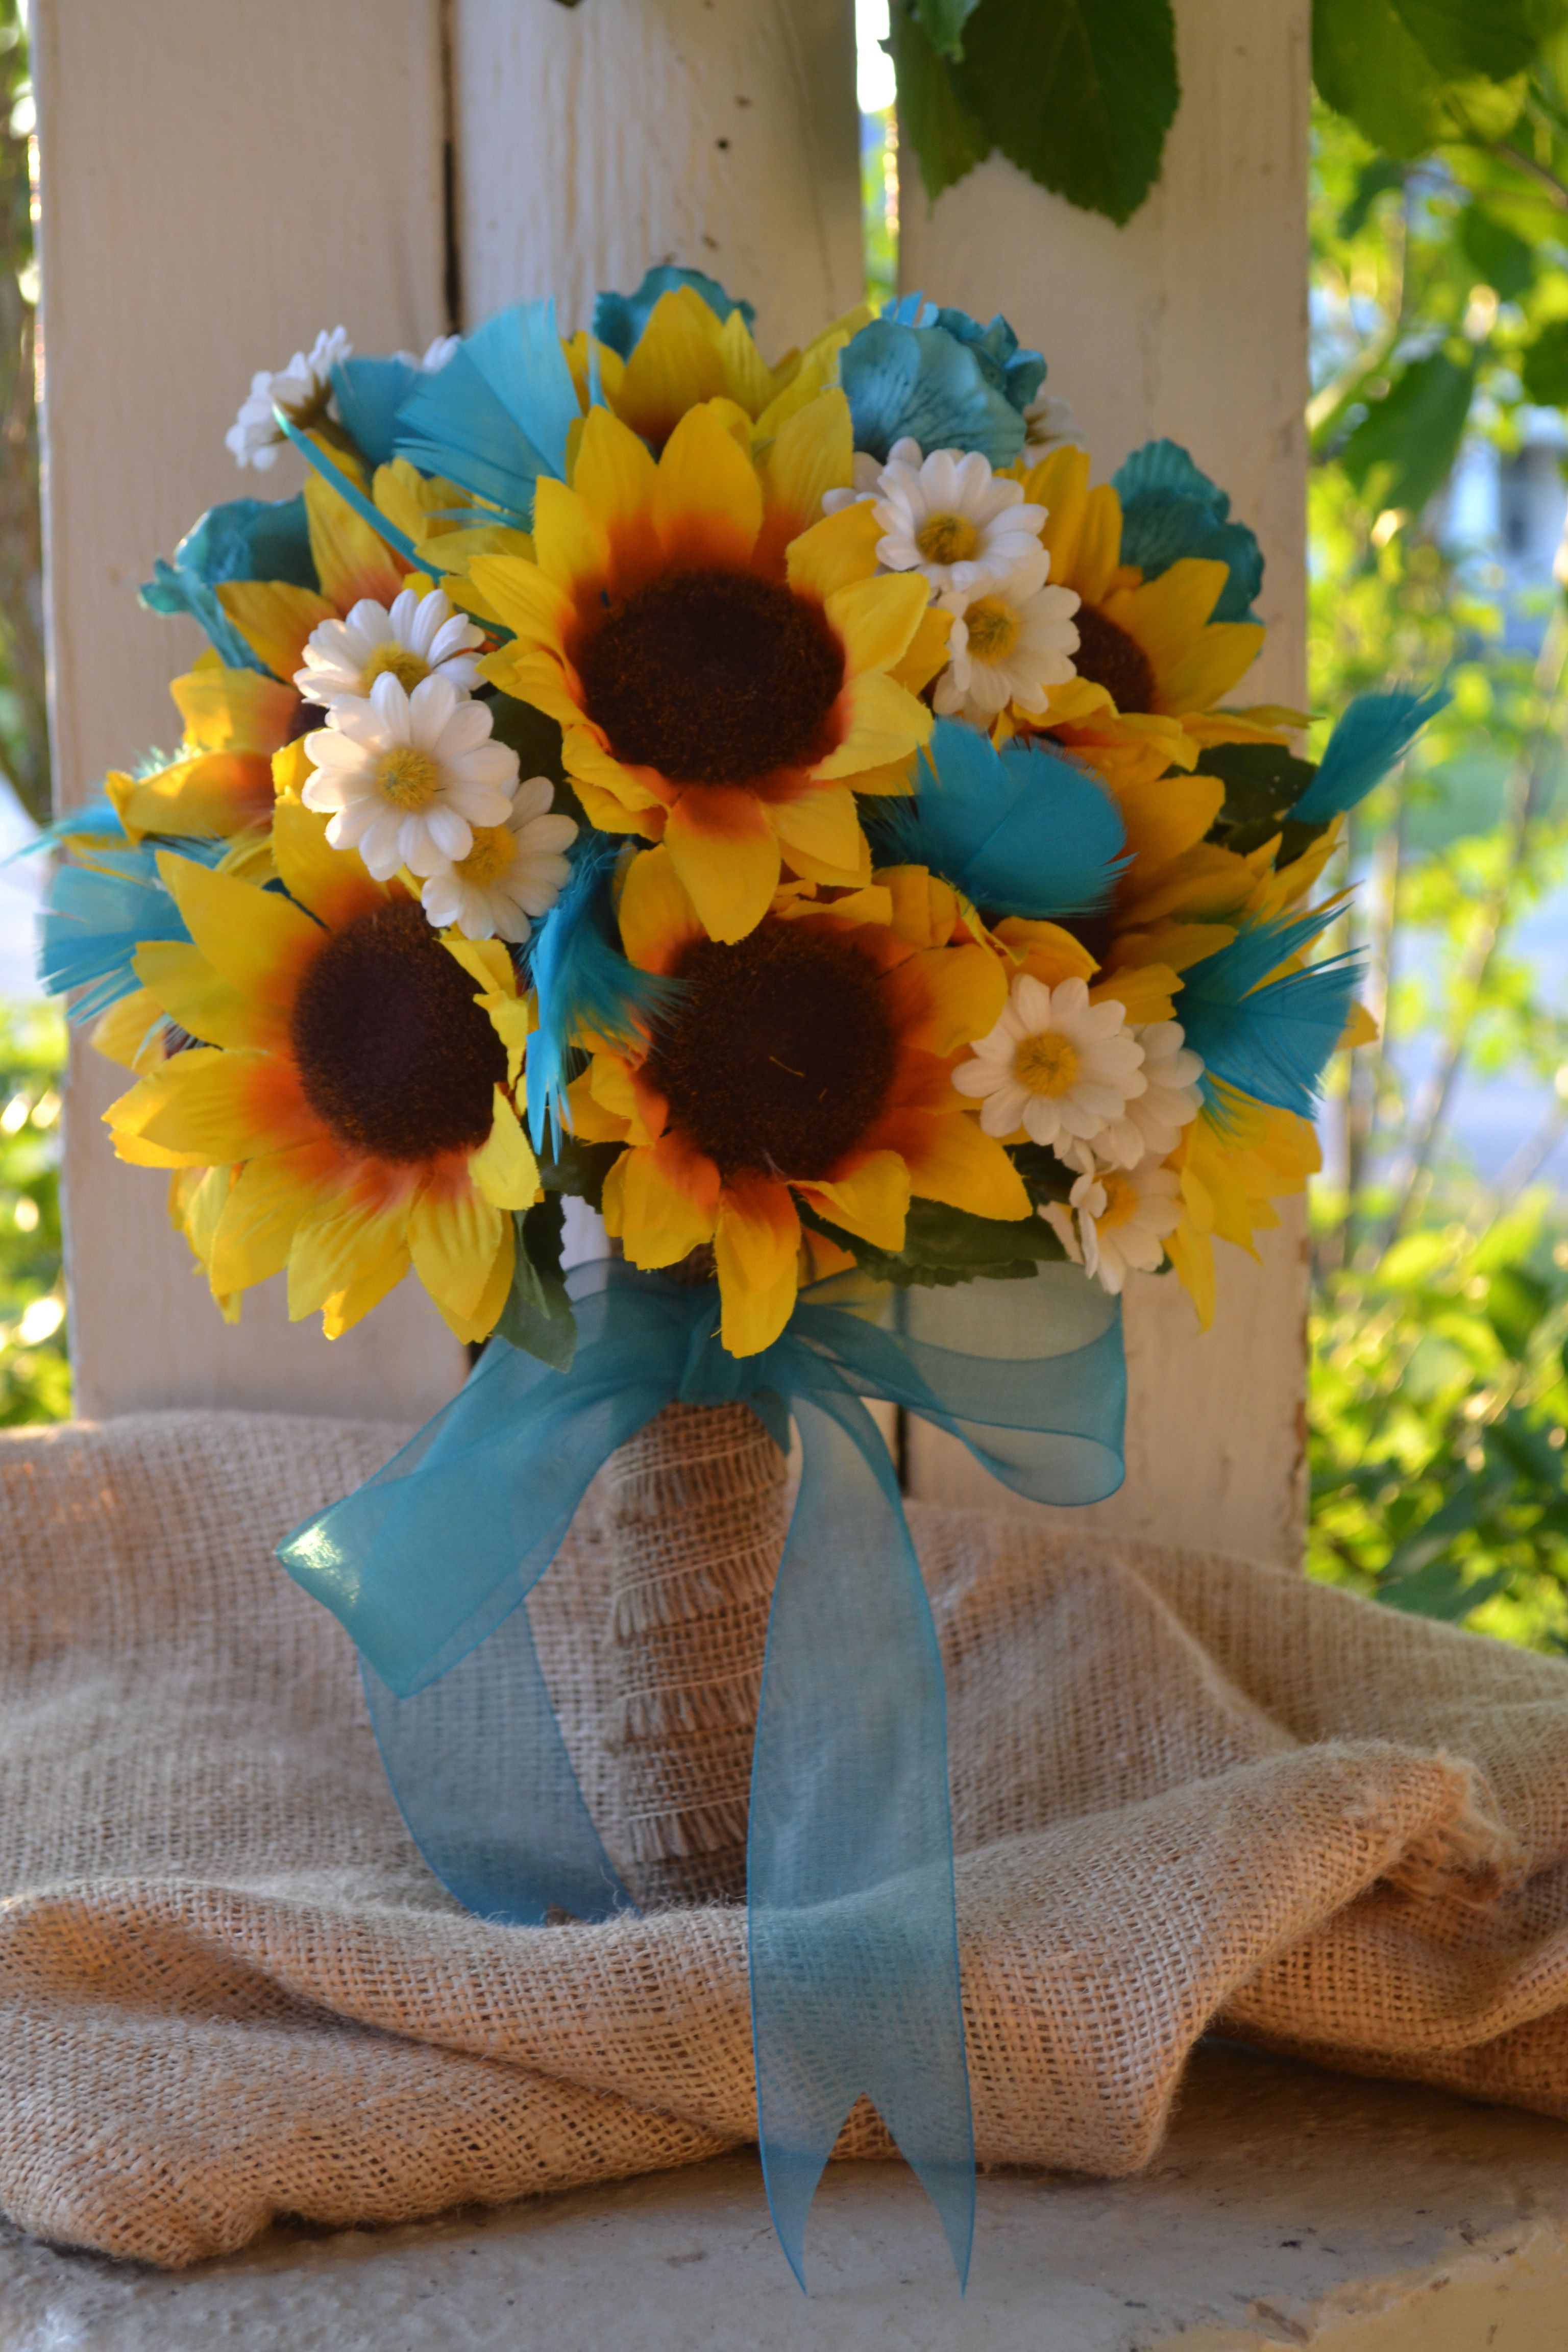 Same Day Flower Delivery Riverside Ca Best Of My Day Bouquet Sunflowers Turquoise Rose Buds Turquoise Goose